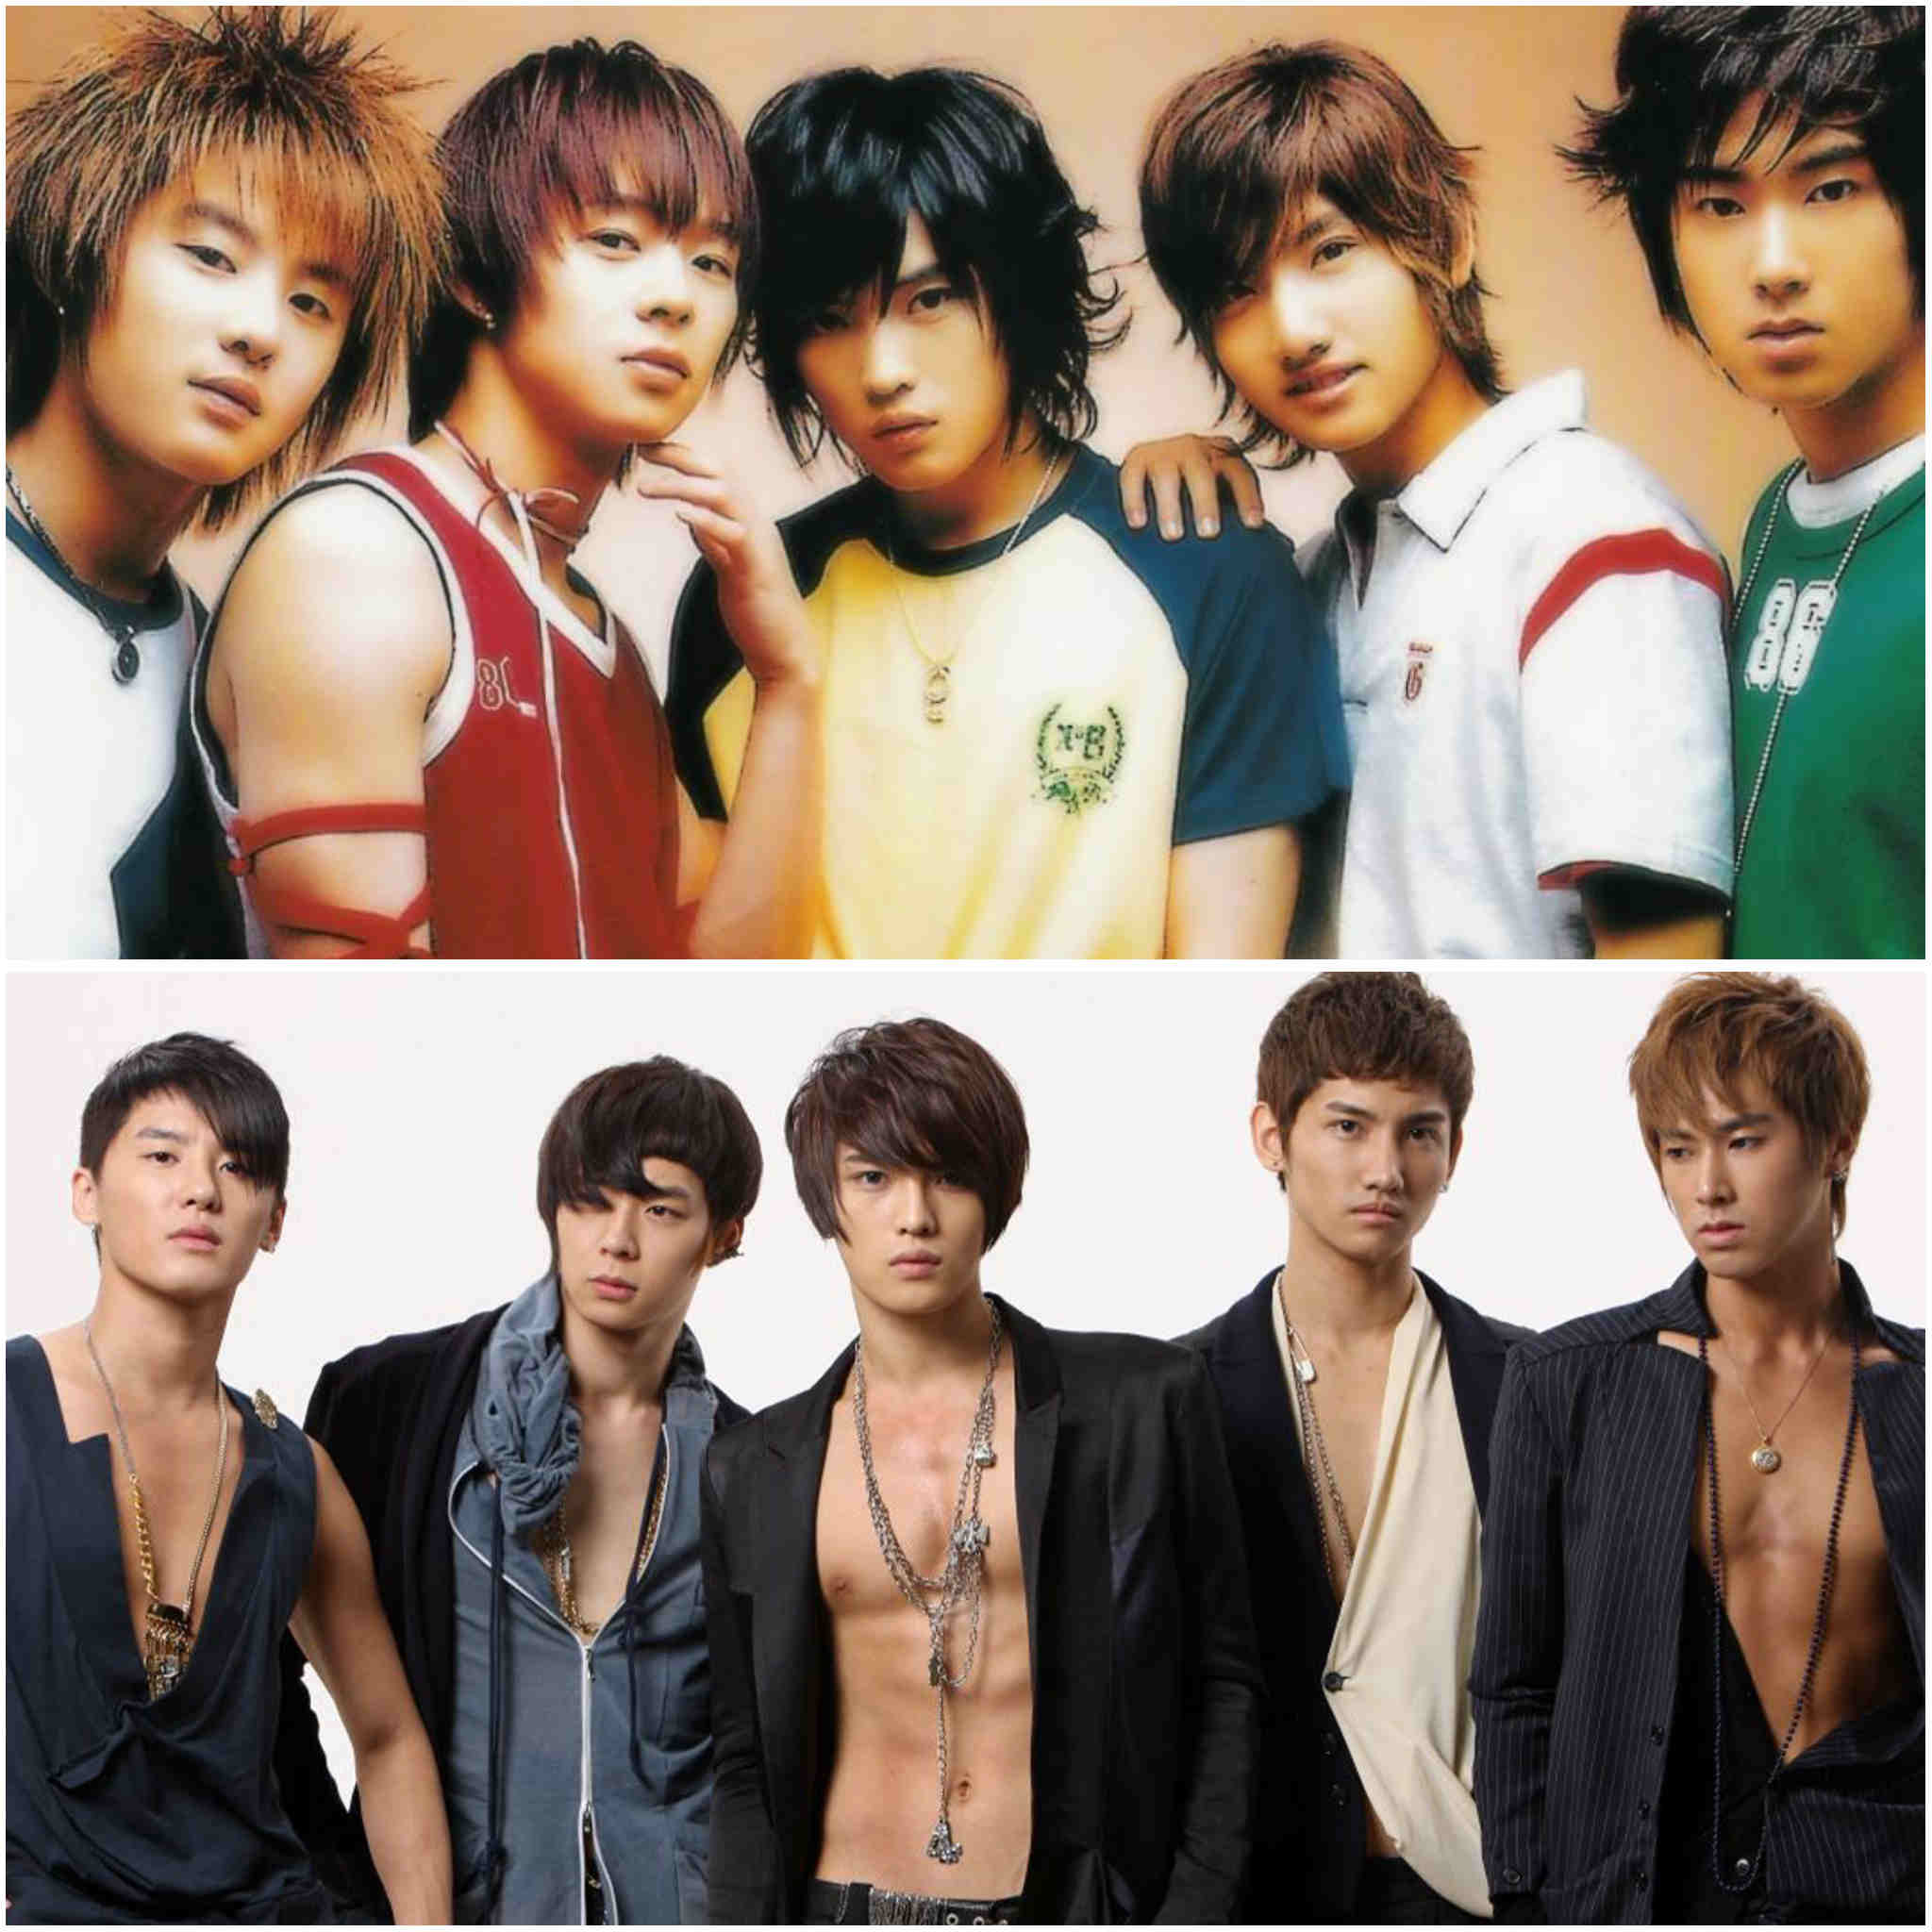 2nd generation K-pop groups - TVXQ!/DBSK/Tohoshinki